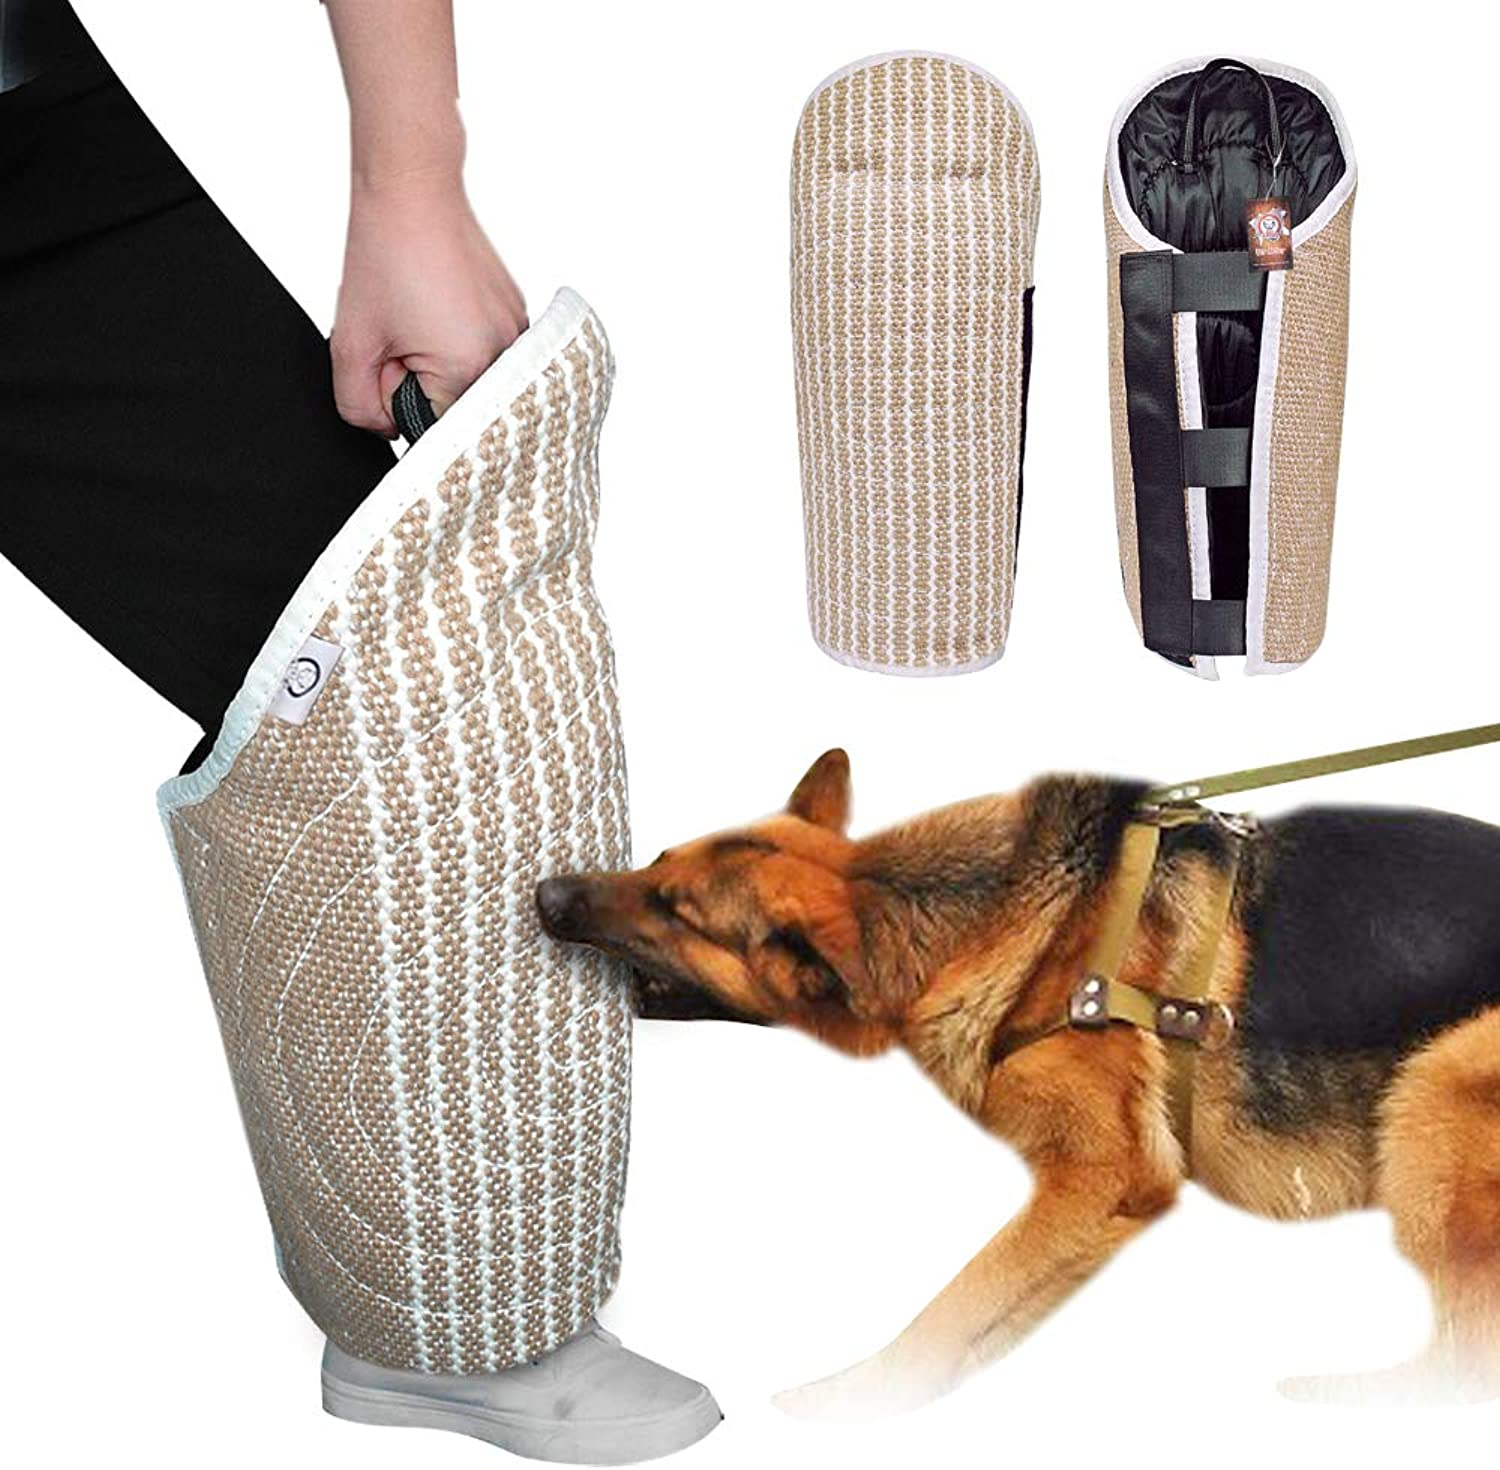 PET ARTIST Professional Jute Puppy Dog Bite Leg Sleeves with Handle for Training Work Dog Puppy,Leg Training Sleeves Fit Malinois Police K9 German Shepherd Mastiff